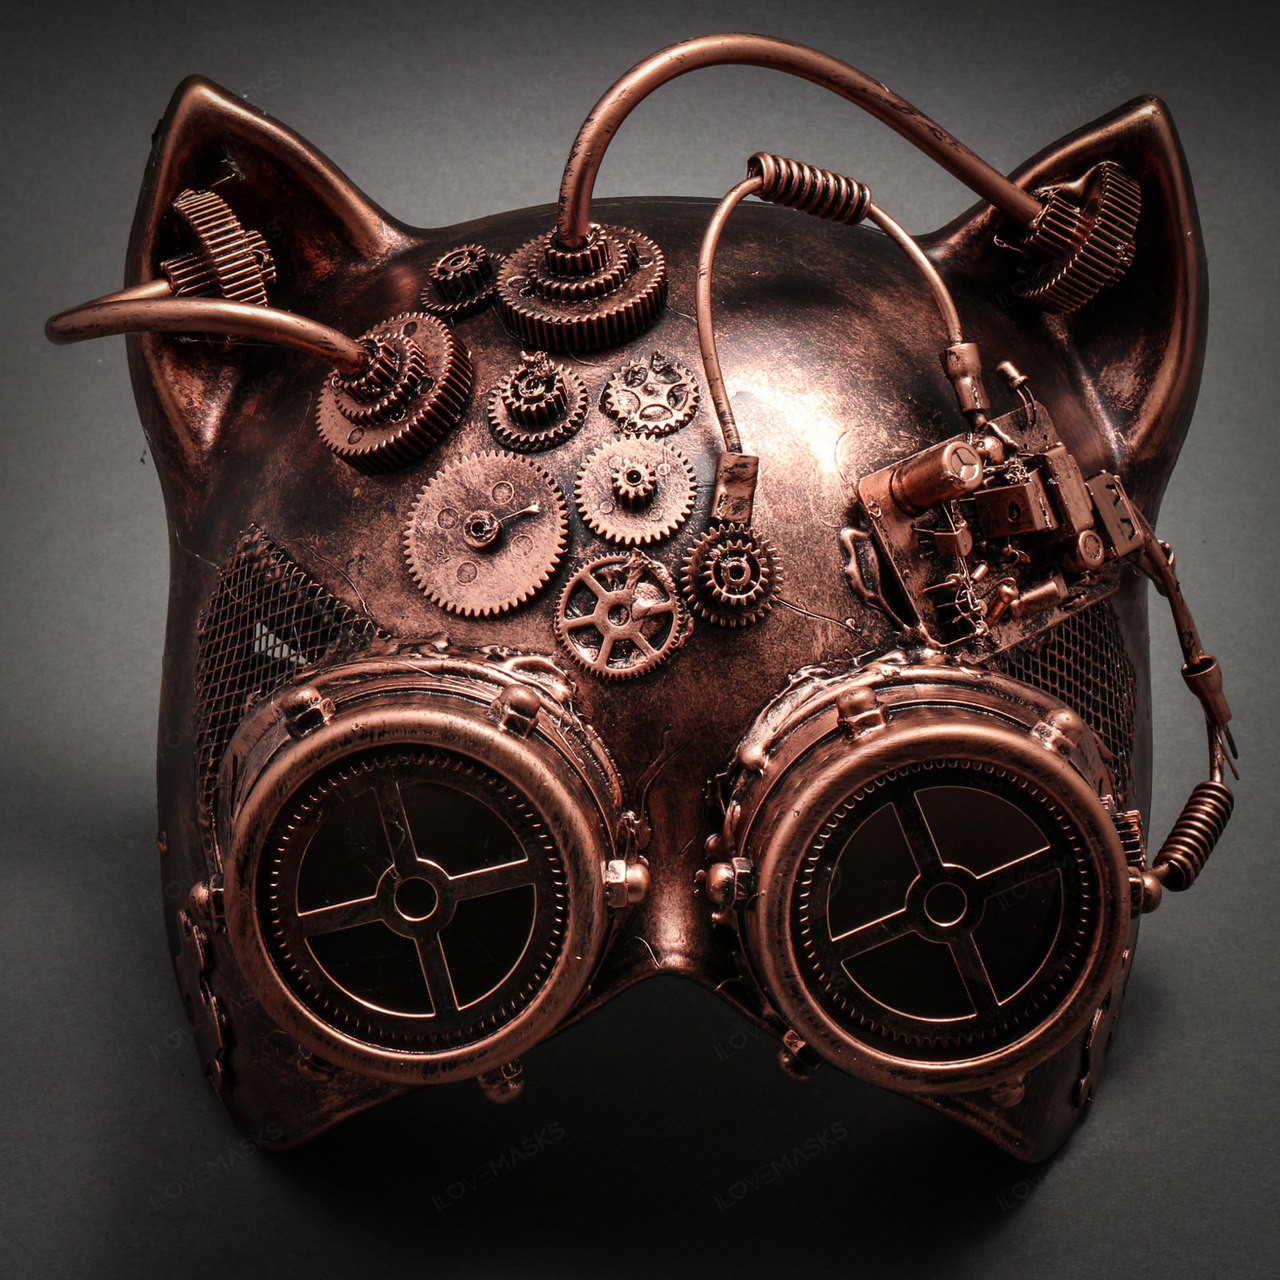 e3e1410431 Metallic Steampunk Goggles Venetian Gatto Cat Mask Masquerade - Copper